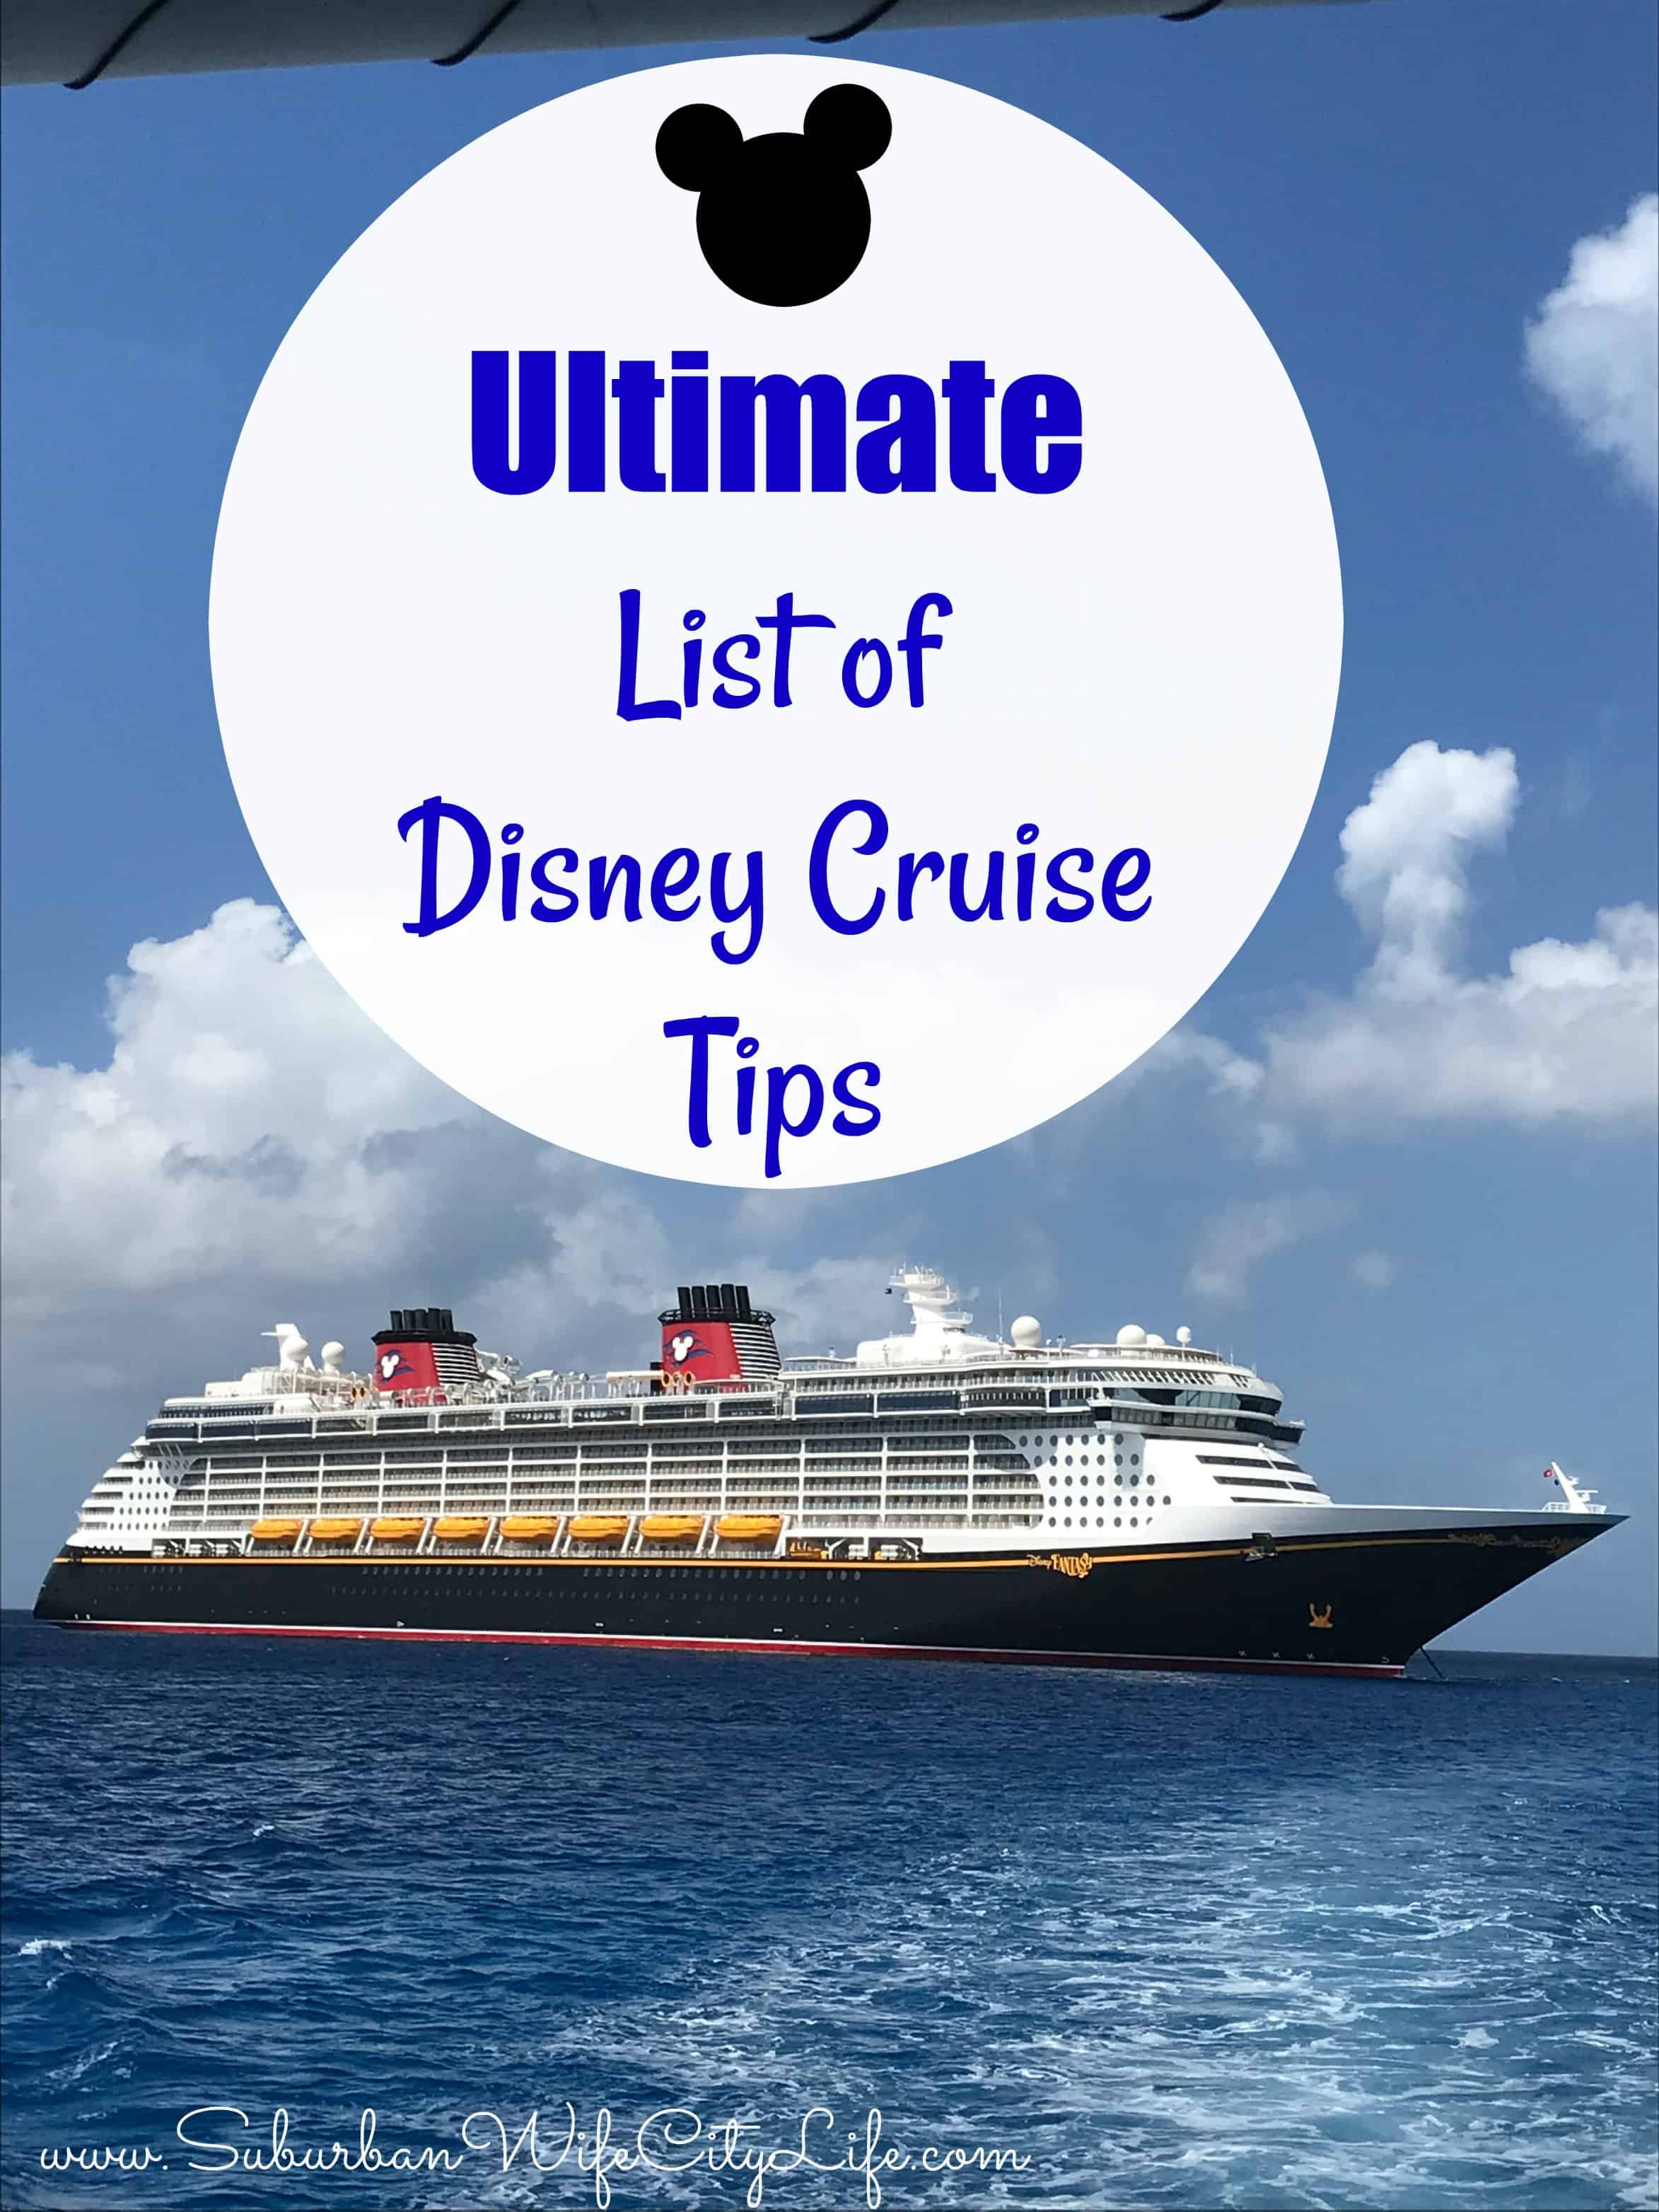 Ultimate List of Disney Cruise Line Tips